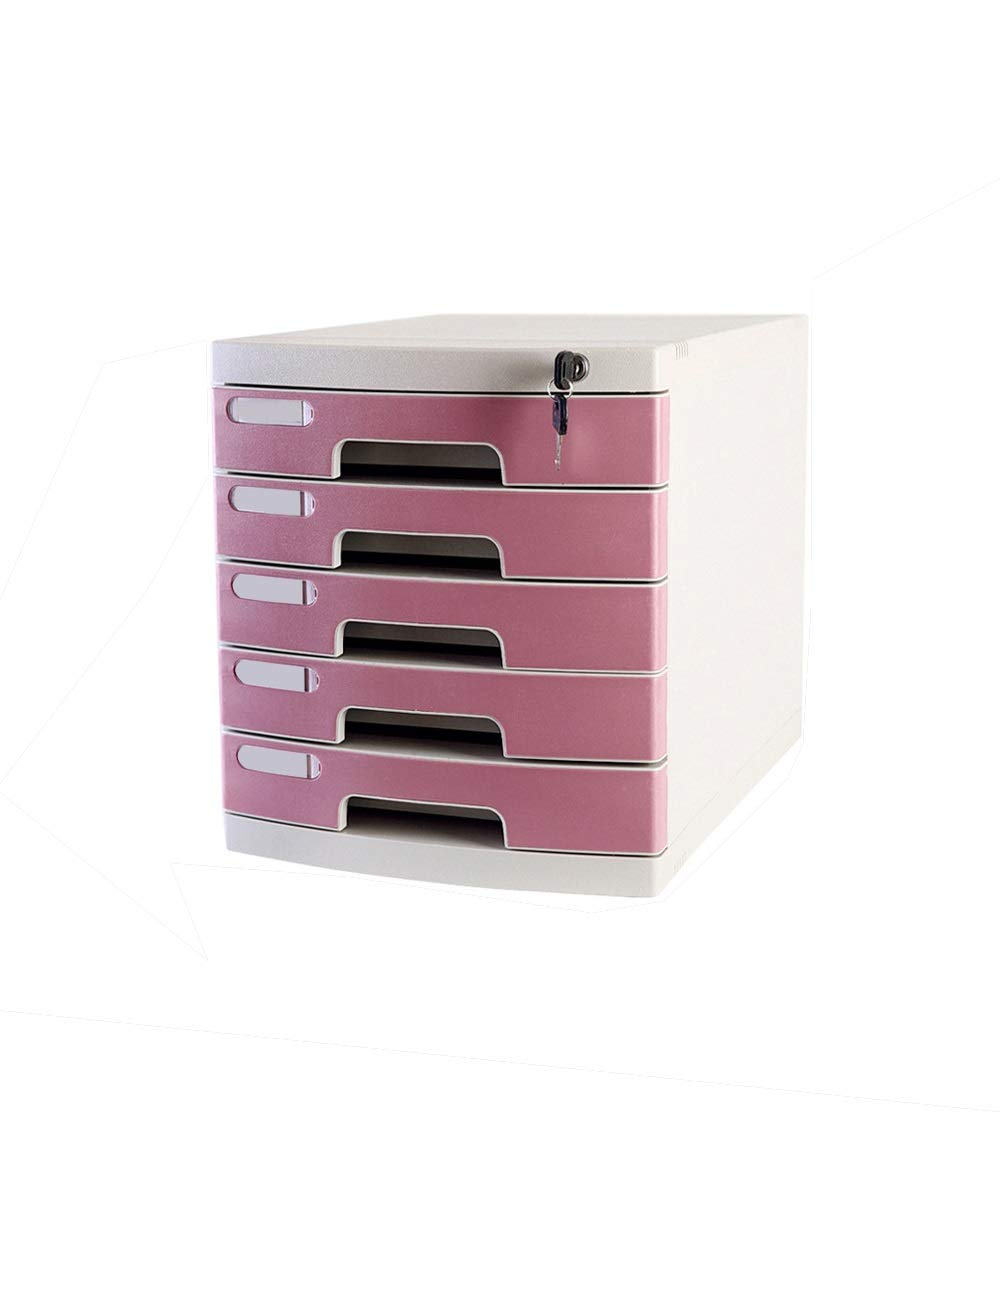 File Cabinet Office Desktop Cabinet 5 Drawers 29.539.443 (cm) Plastic Safety Cabinet File Storage Cabinet Storage Box with Lock Filing cabinets (Color : B)